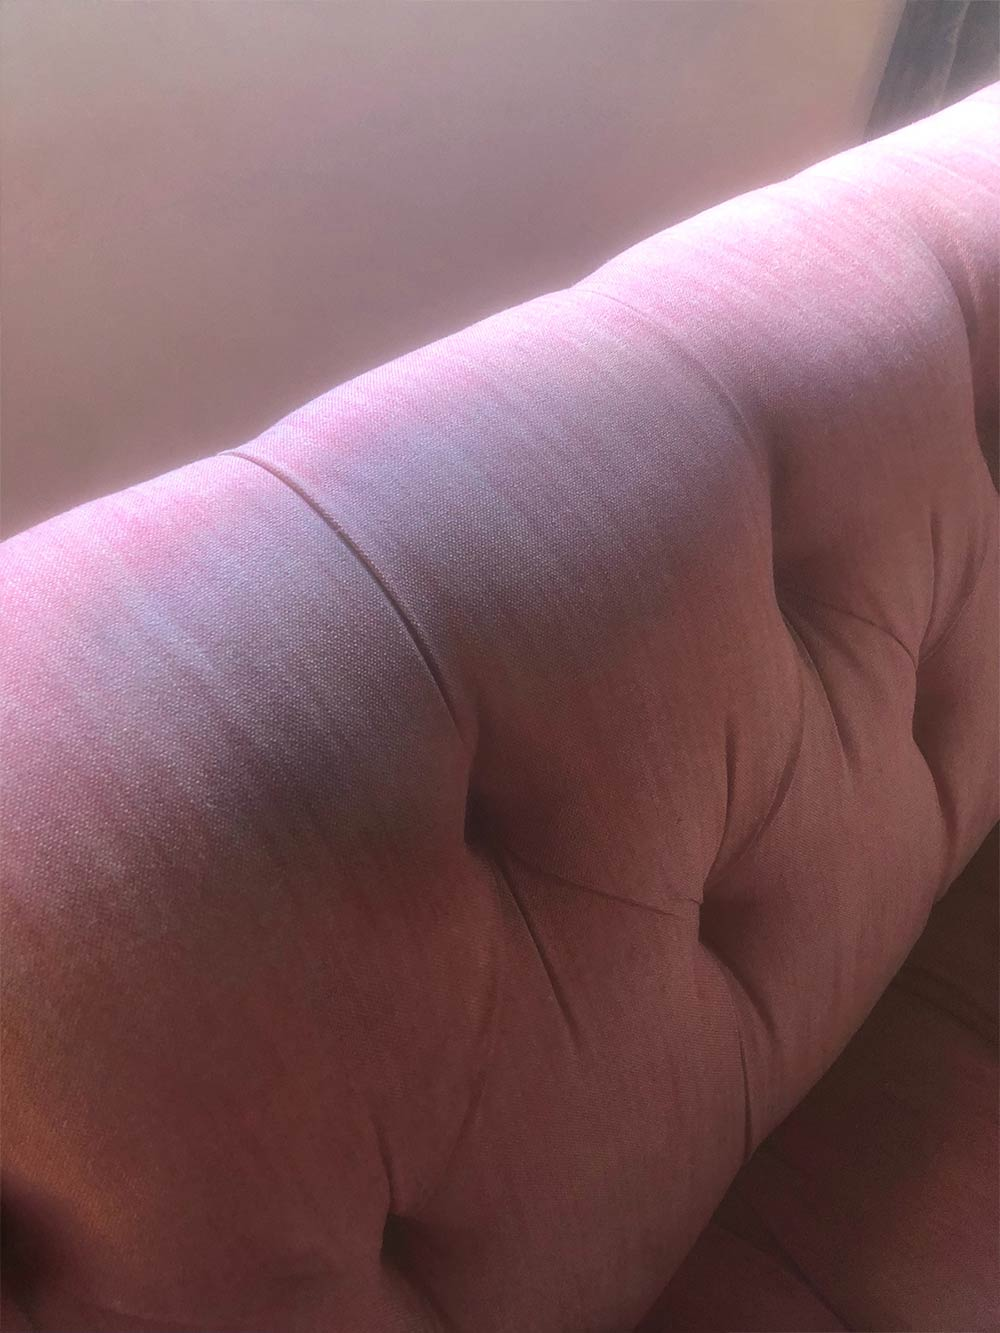 Sofa Cleaning, Furniture, Colchester, Essex